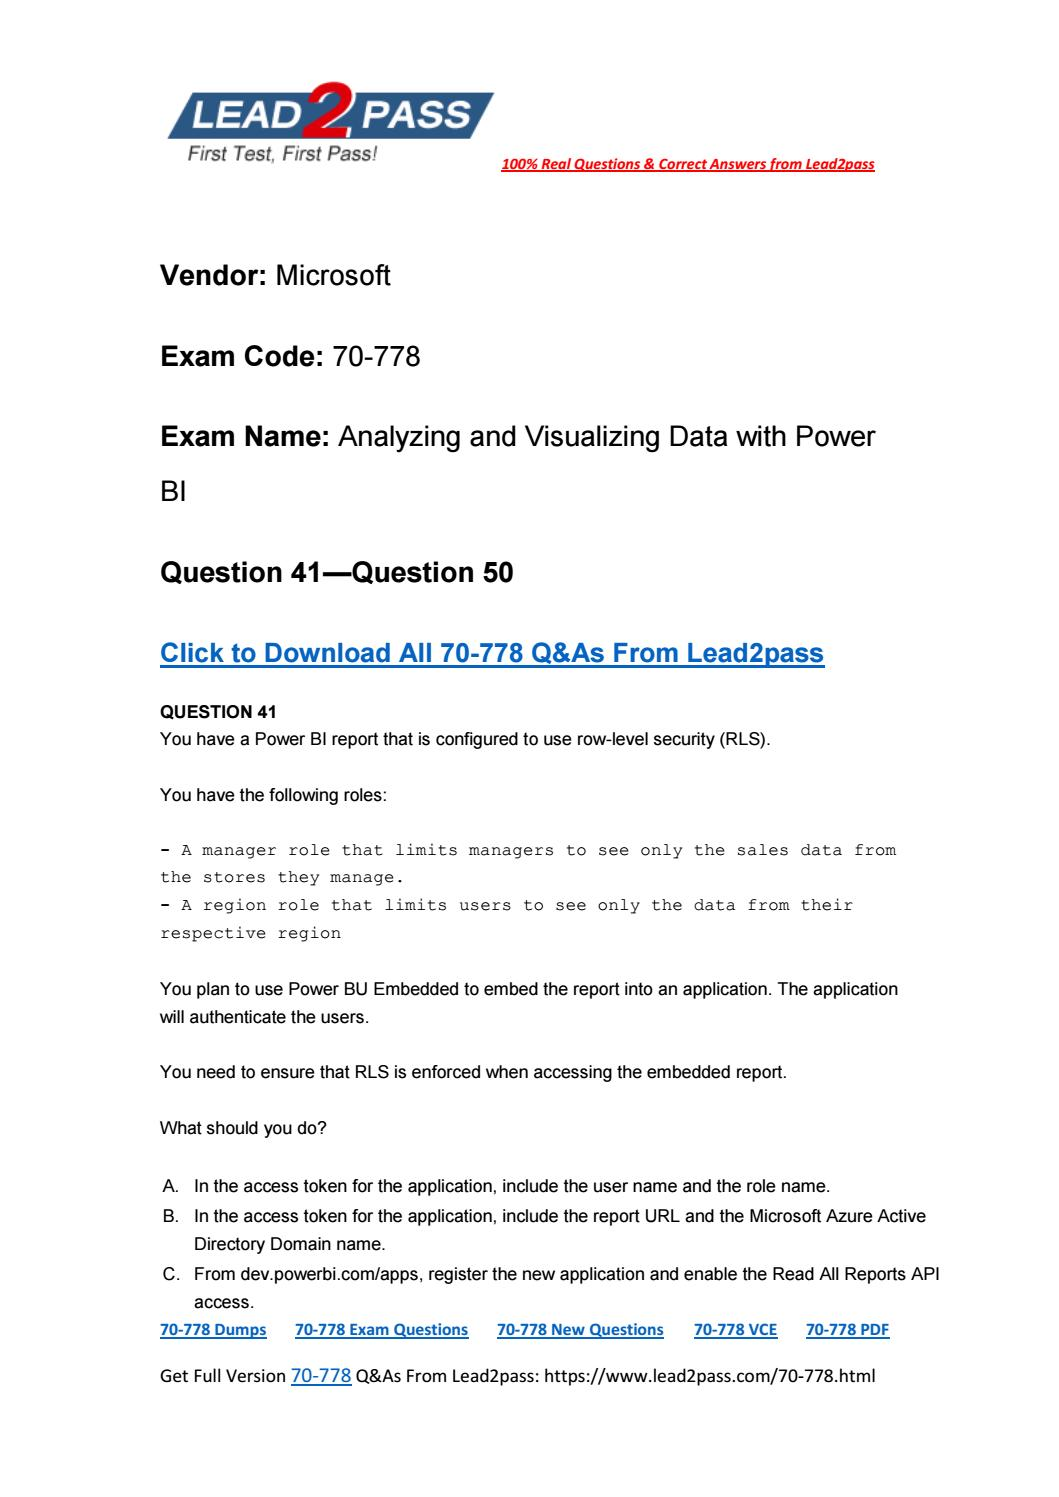 Free Download Of Lead2pass 70-778 Real Exam Questions (41-50